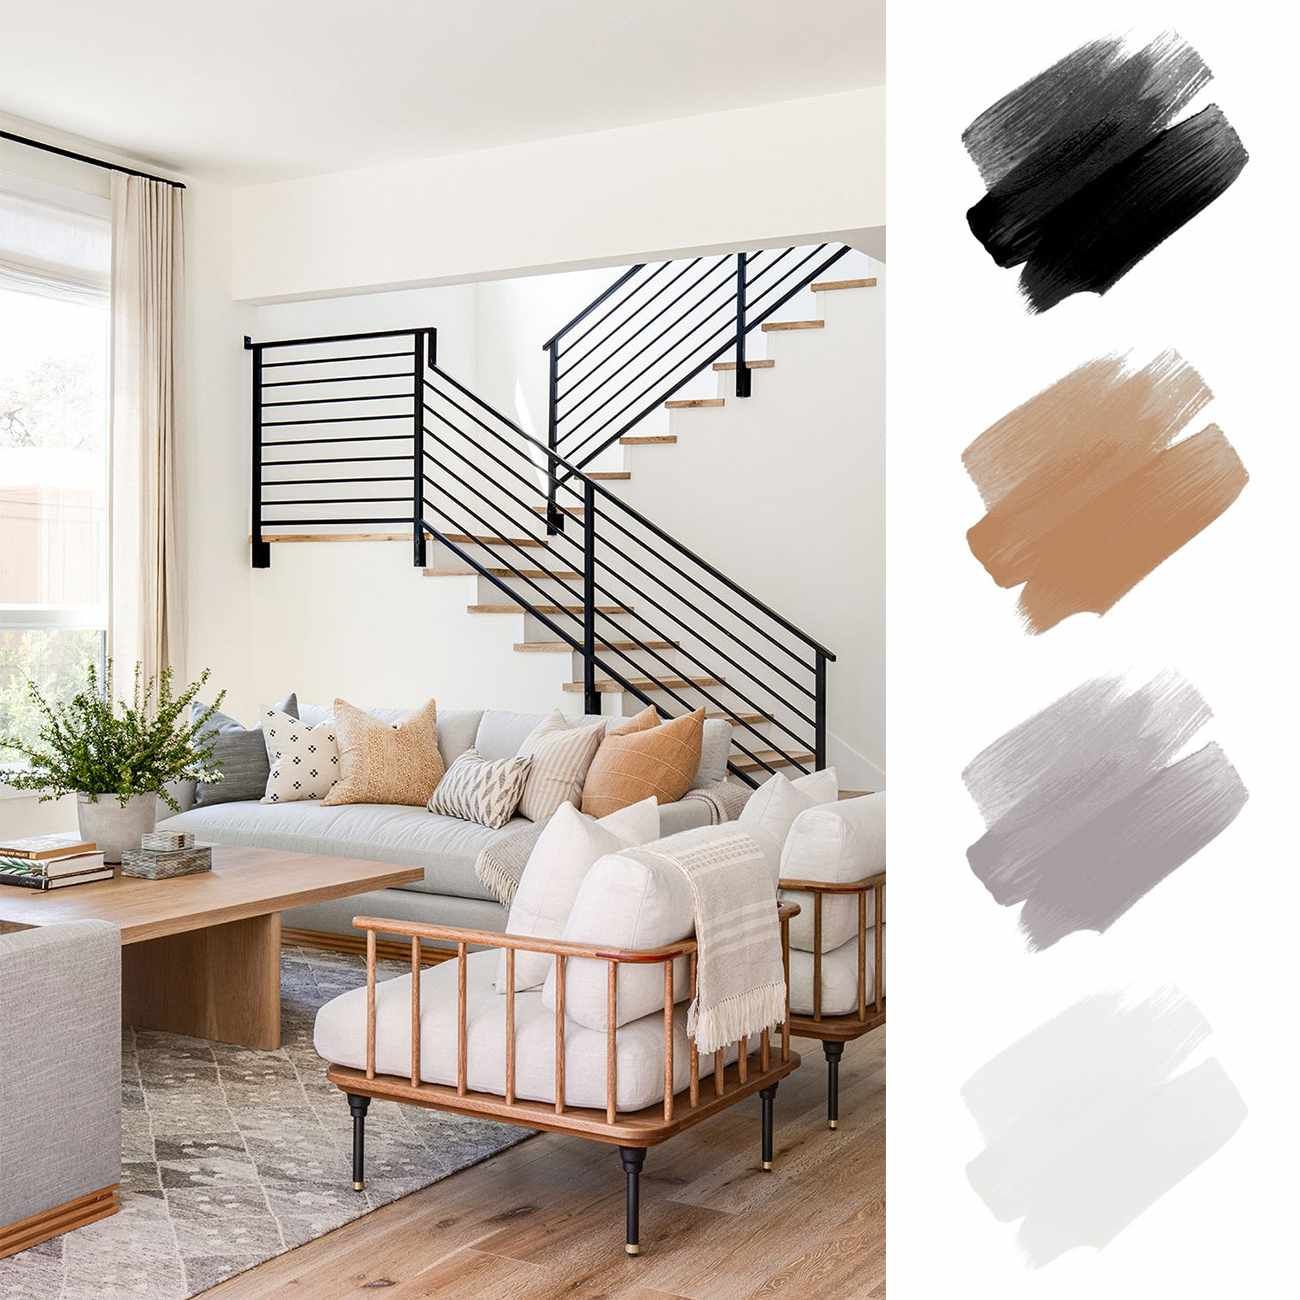 neutral color palette - black, wood tone, gray and soft white